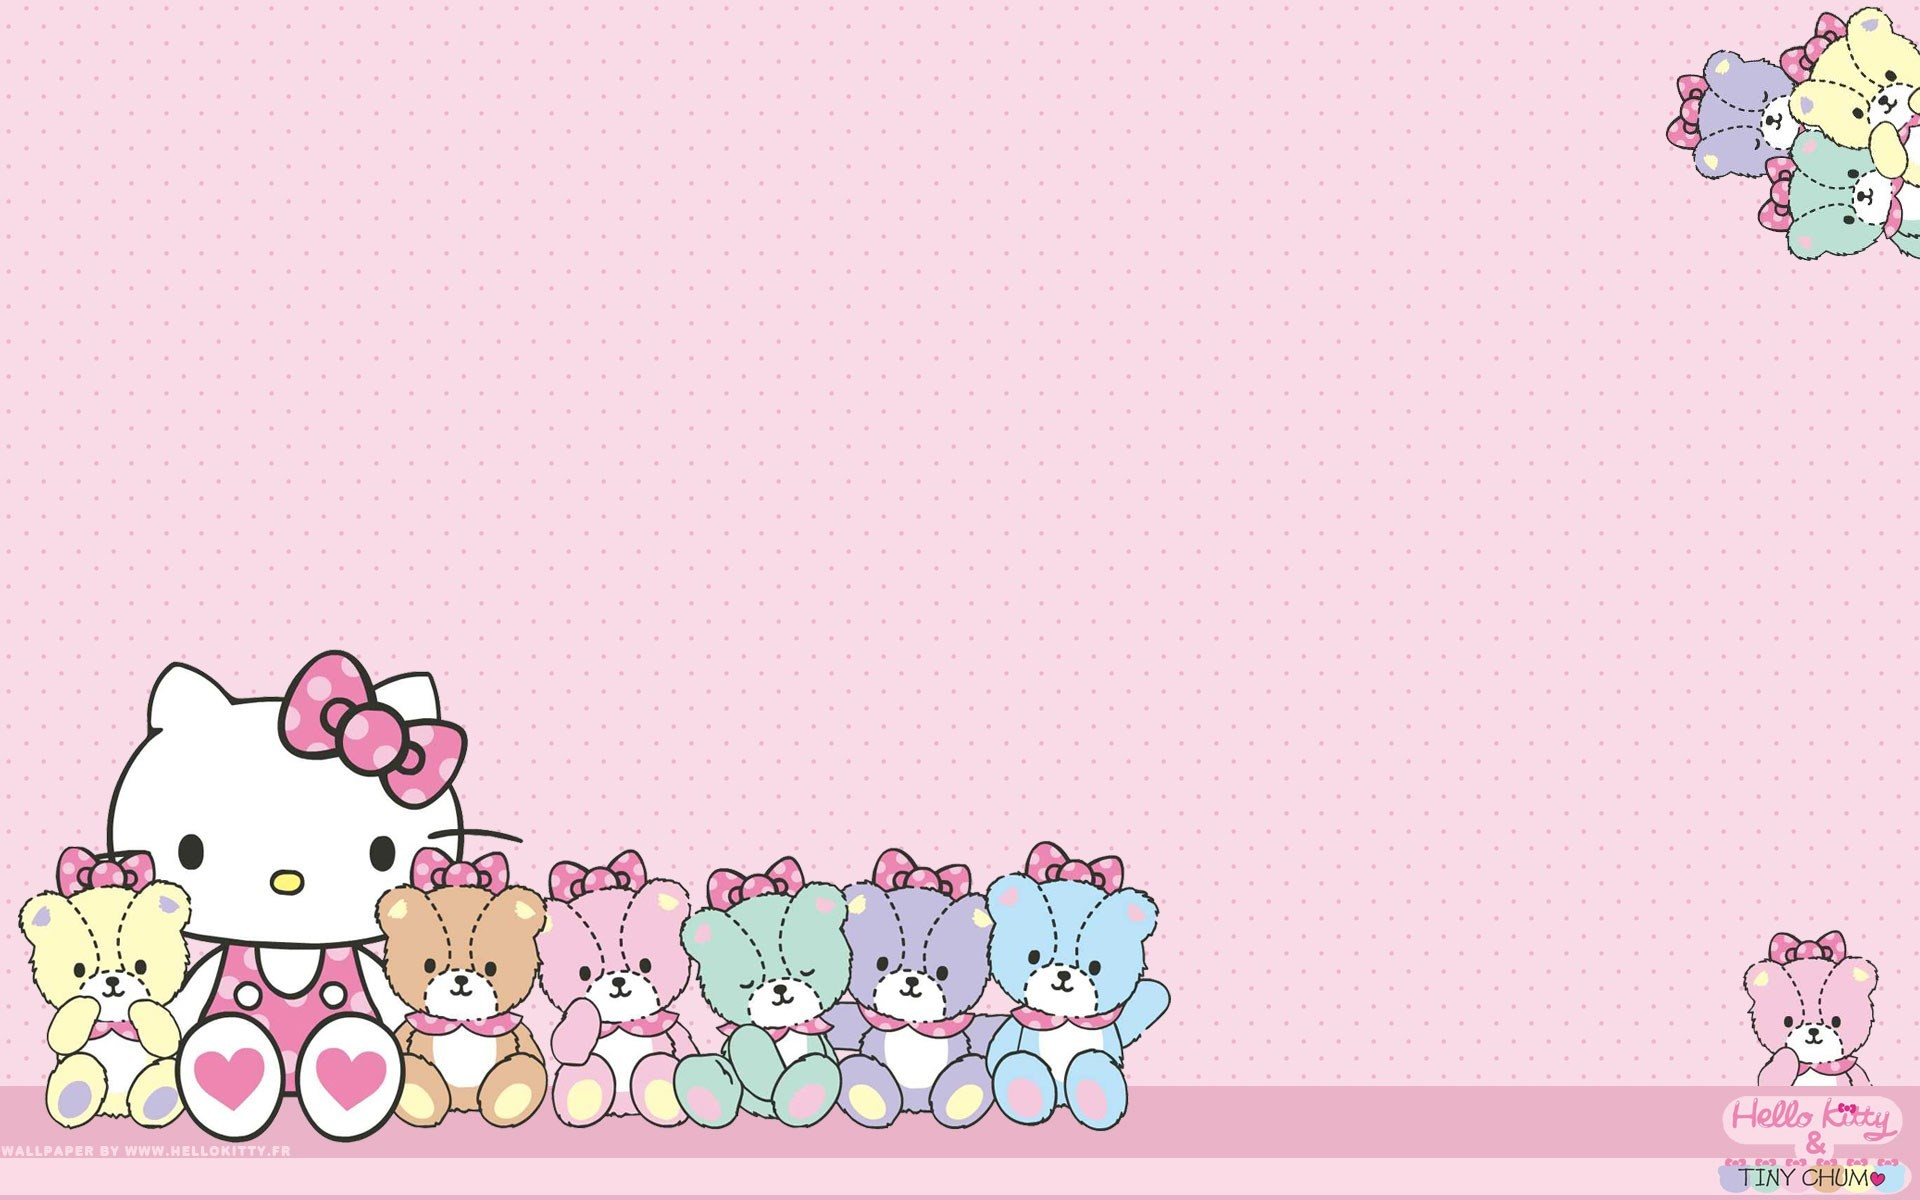 Download Wallpaper Hello Kitty Laptop - 1074347-free-download-hello-kitty-cute-image-background-1920x1200-for-iphone-5s  You Should Have_91981.jpg